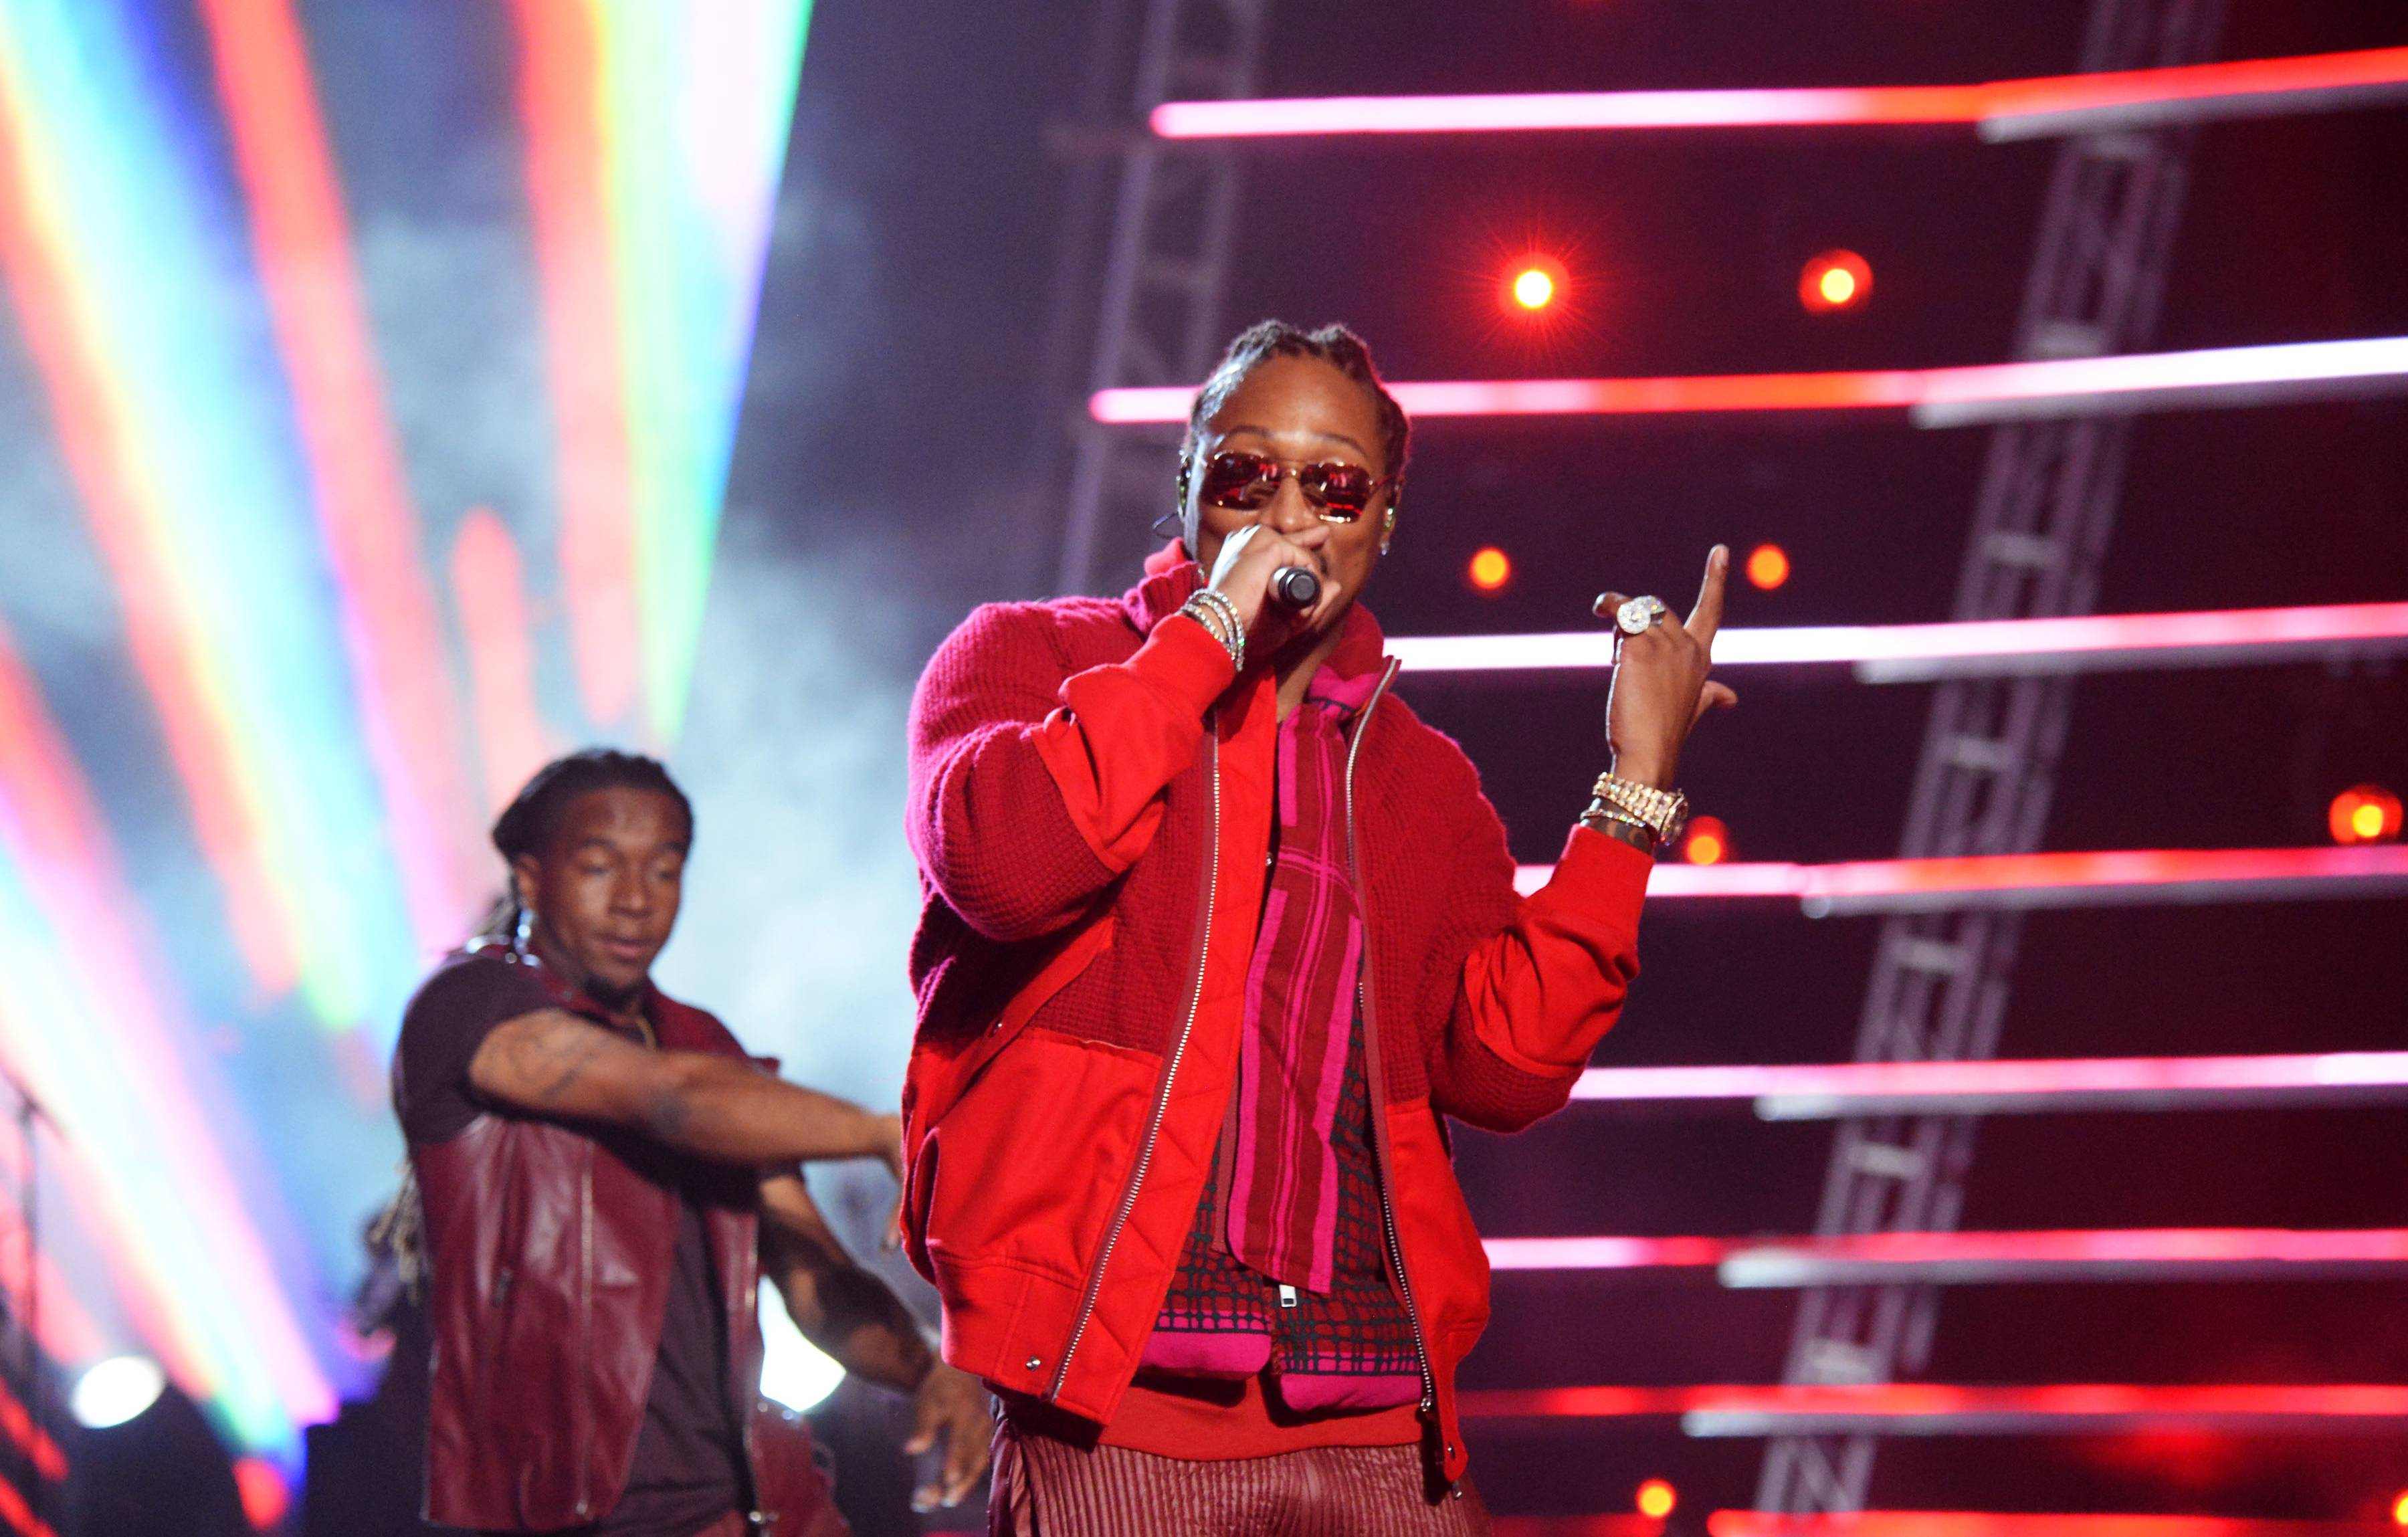 """Future had us checking our grammar during his performance of """"F**k Up Some Commas"""" at the 2016 VMAs."""